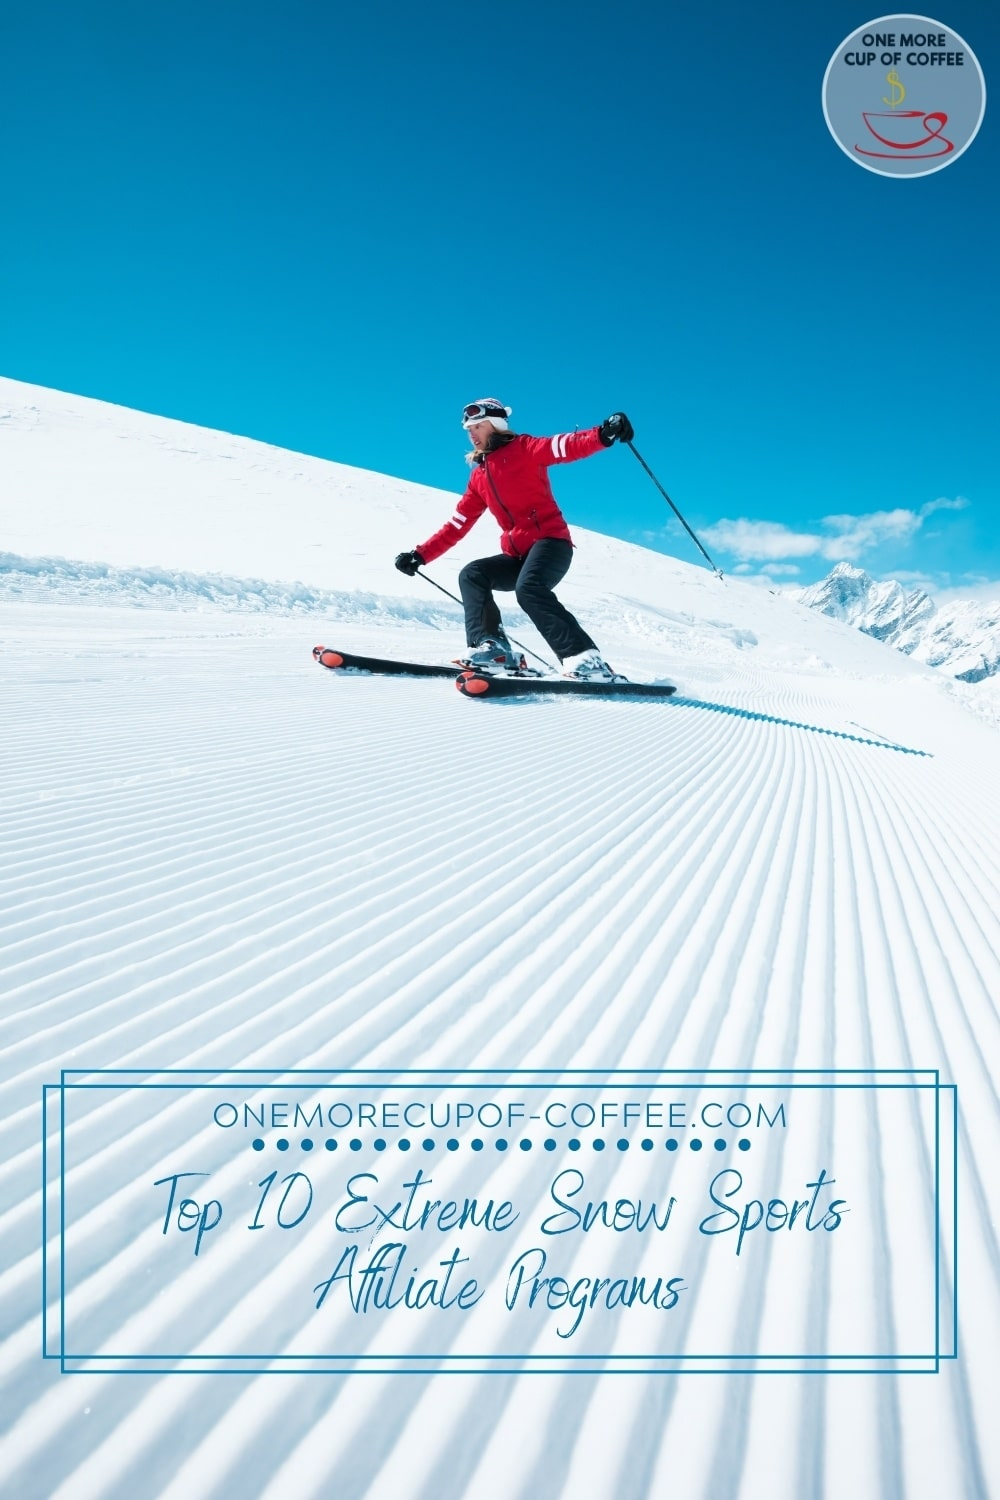 woman skiing in red and black ski outfit, with text overlay